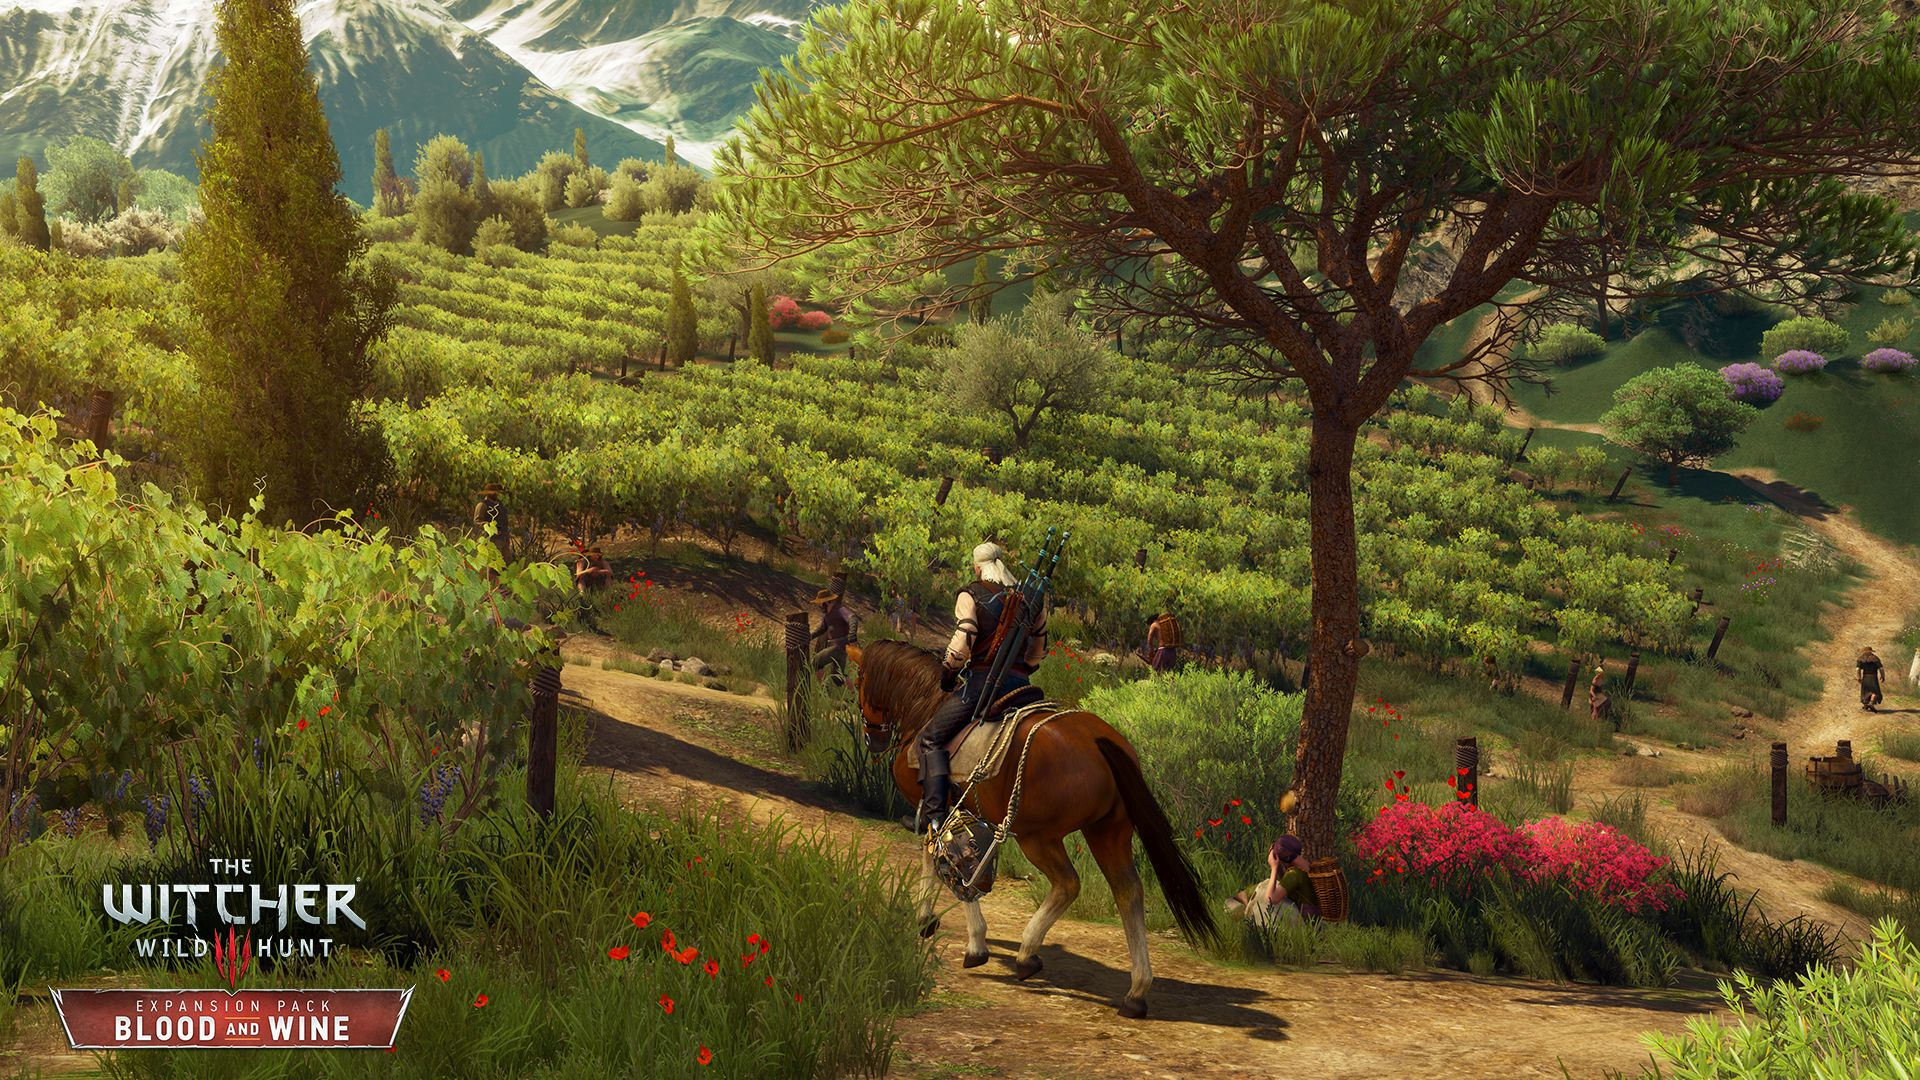 The Witcher 3: Blood and Wine The Witcher 3: Wild Hunt